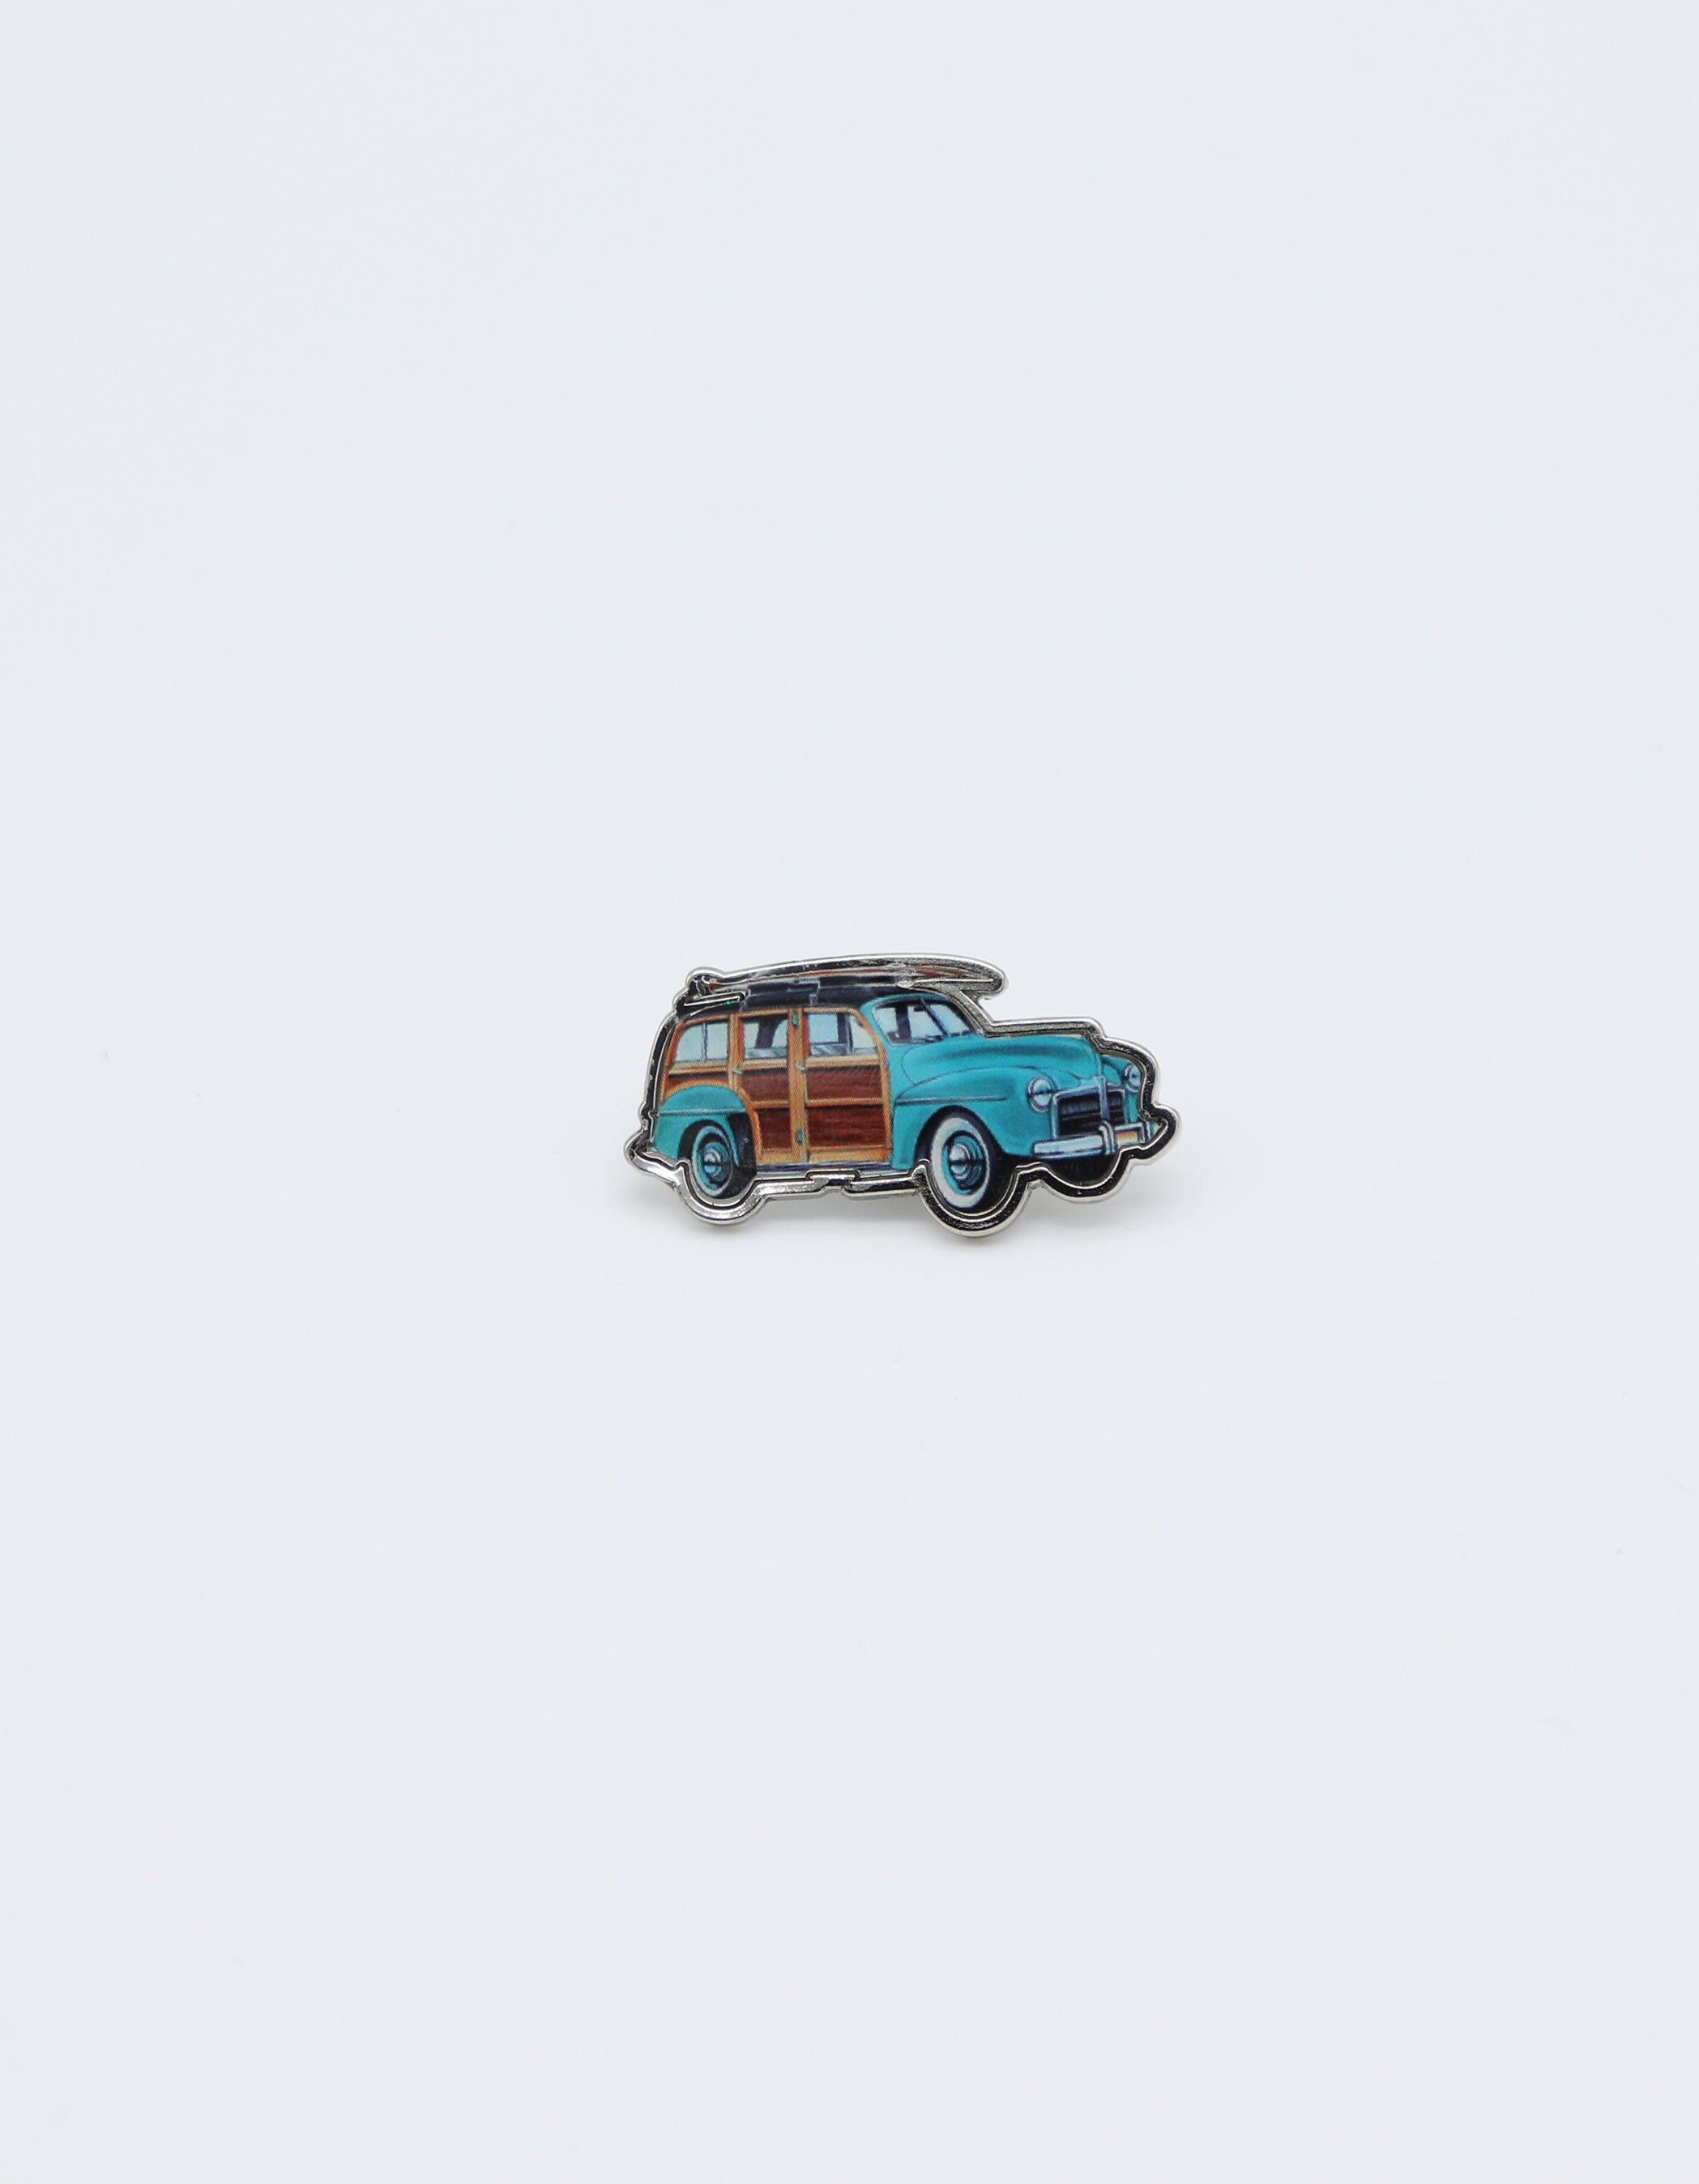 Station Wagon Pin. Sky blue 1947 Woody vintage wagon Car Pin with a surfboard on top. Design and sold my small local shop SDTrading Co.